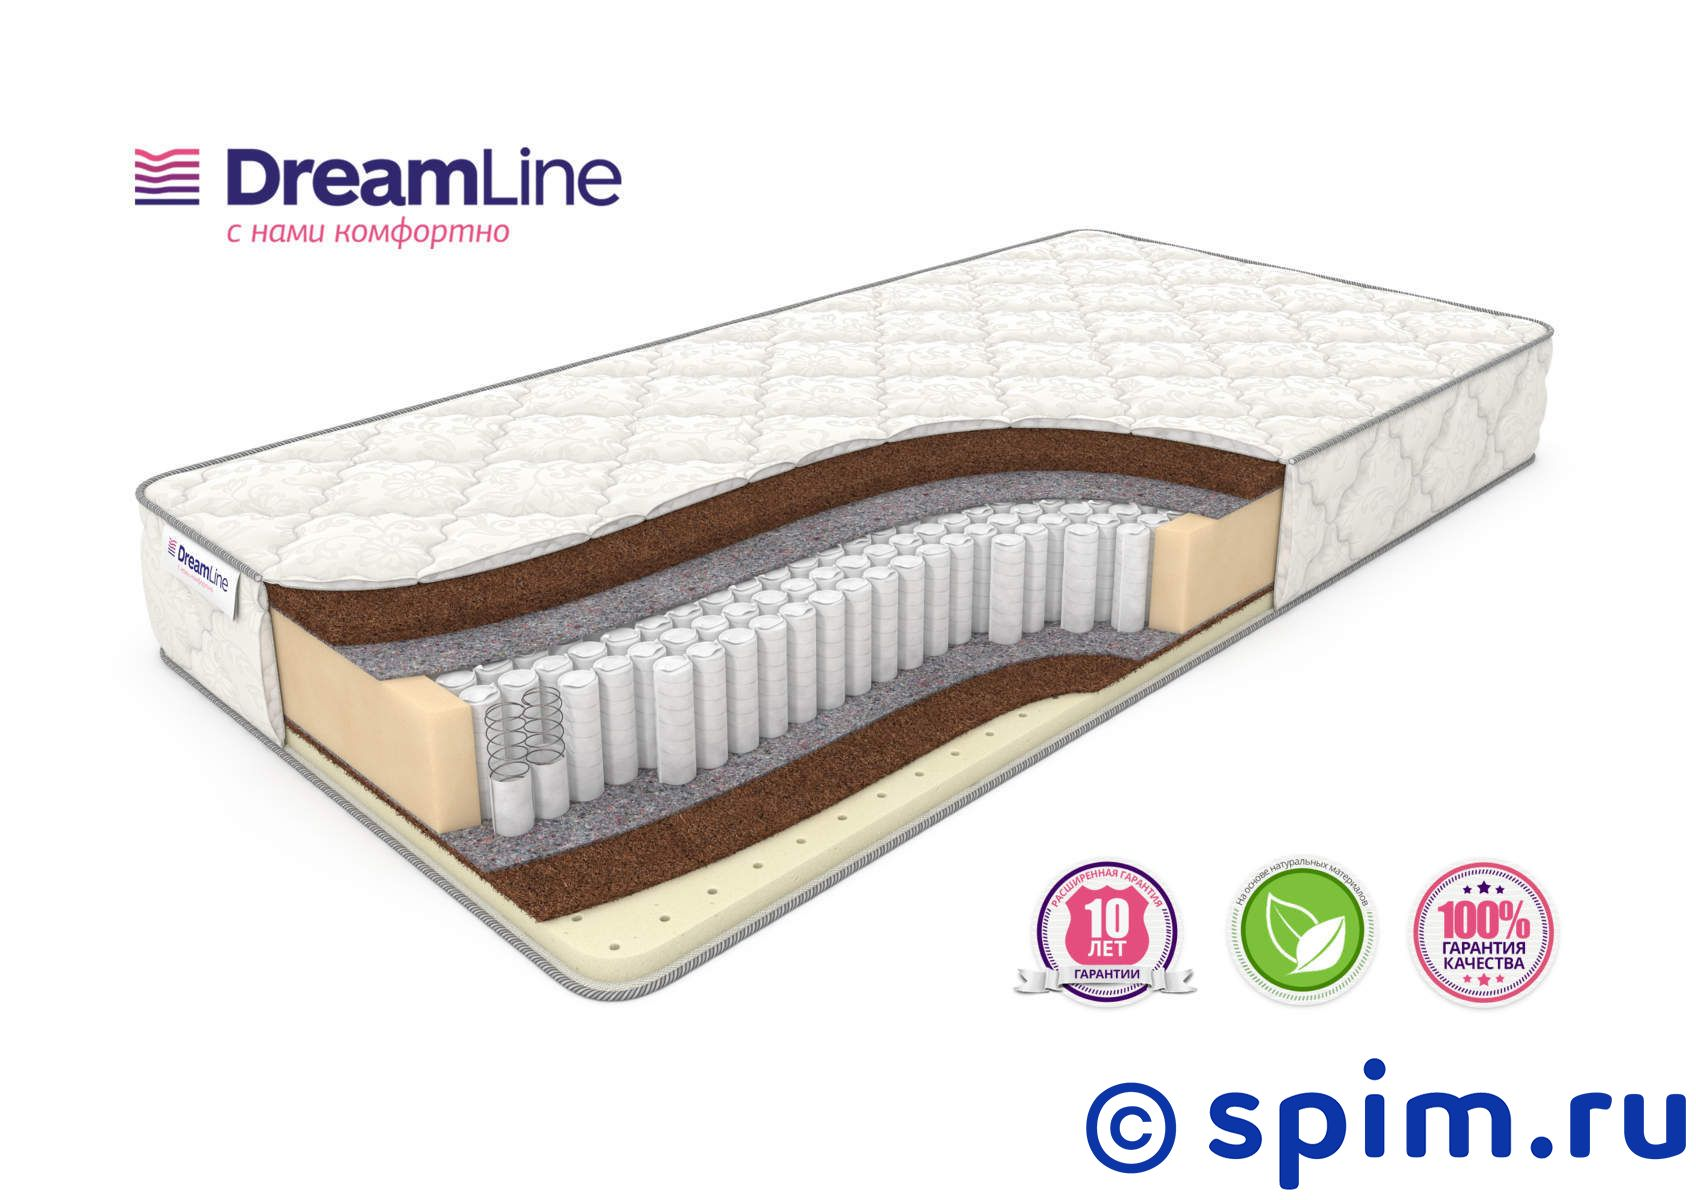 Матрас DreamLine SleepDream Hard S1000 150х195 см матрас dreamline sleepdream medium tfk 140х200 см